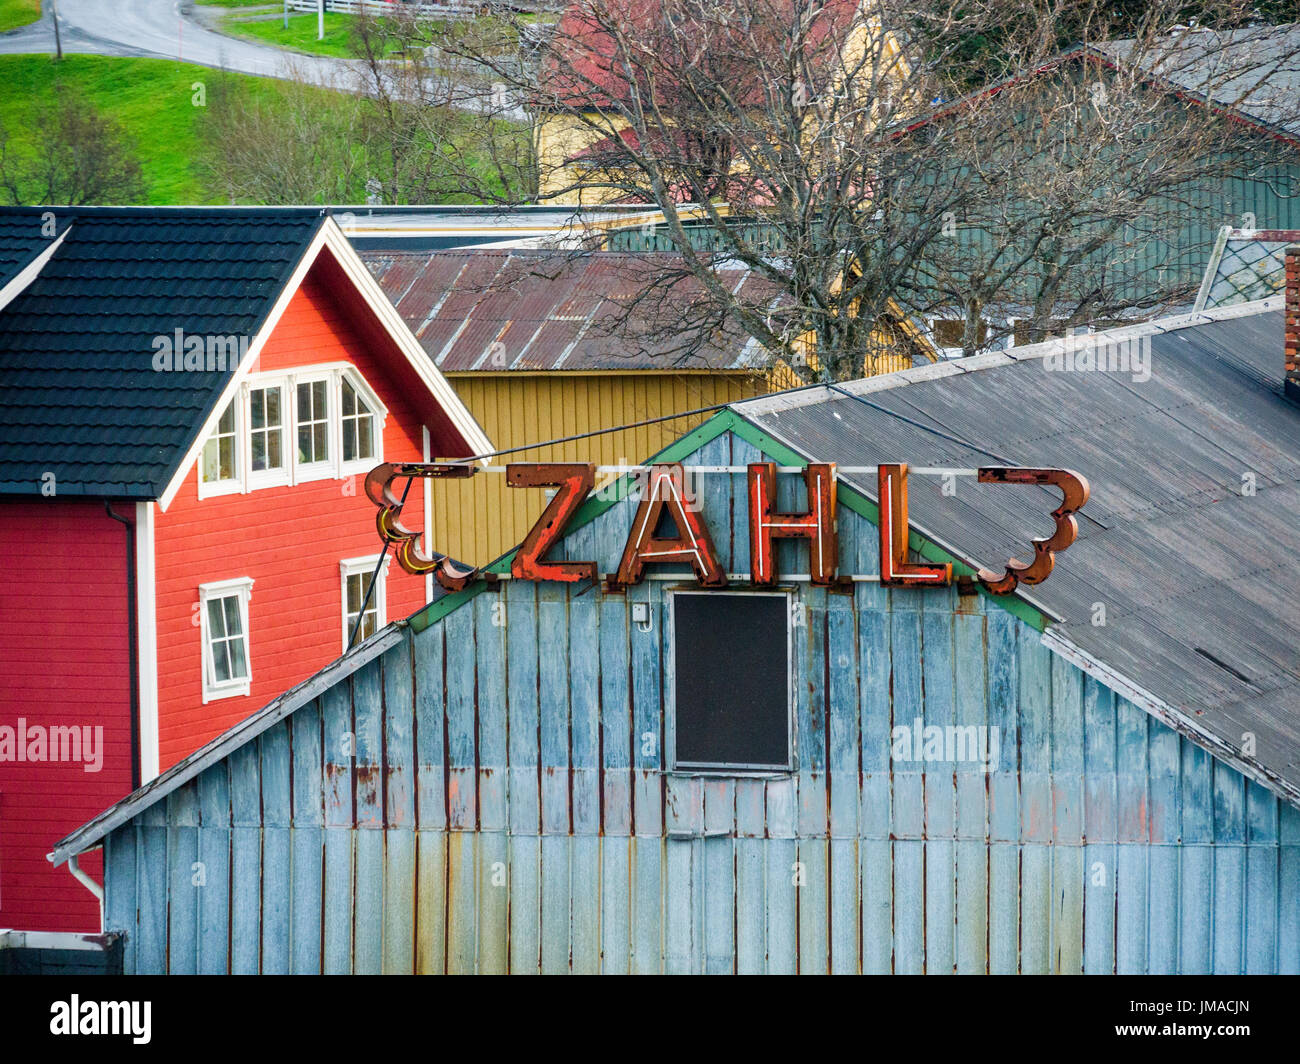 Wooden architecture in the village of Nesna, Nordland County, Norway. - Stock Image